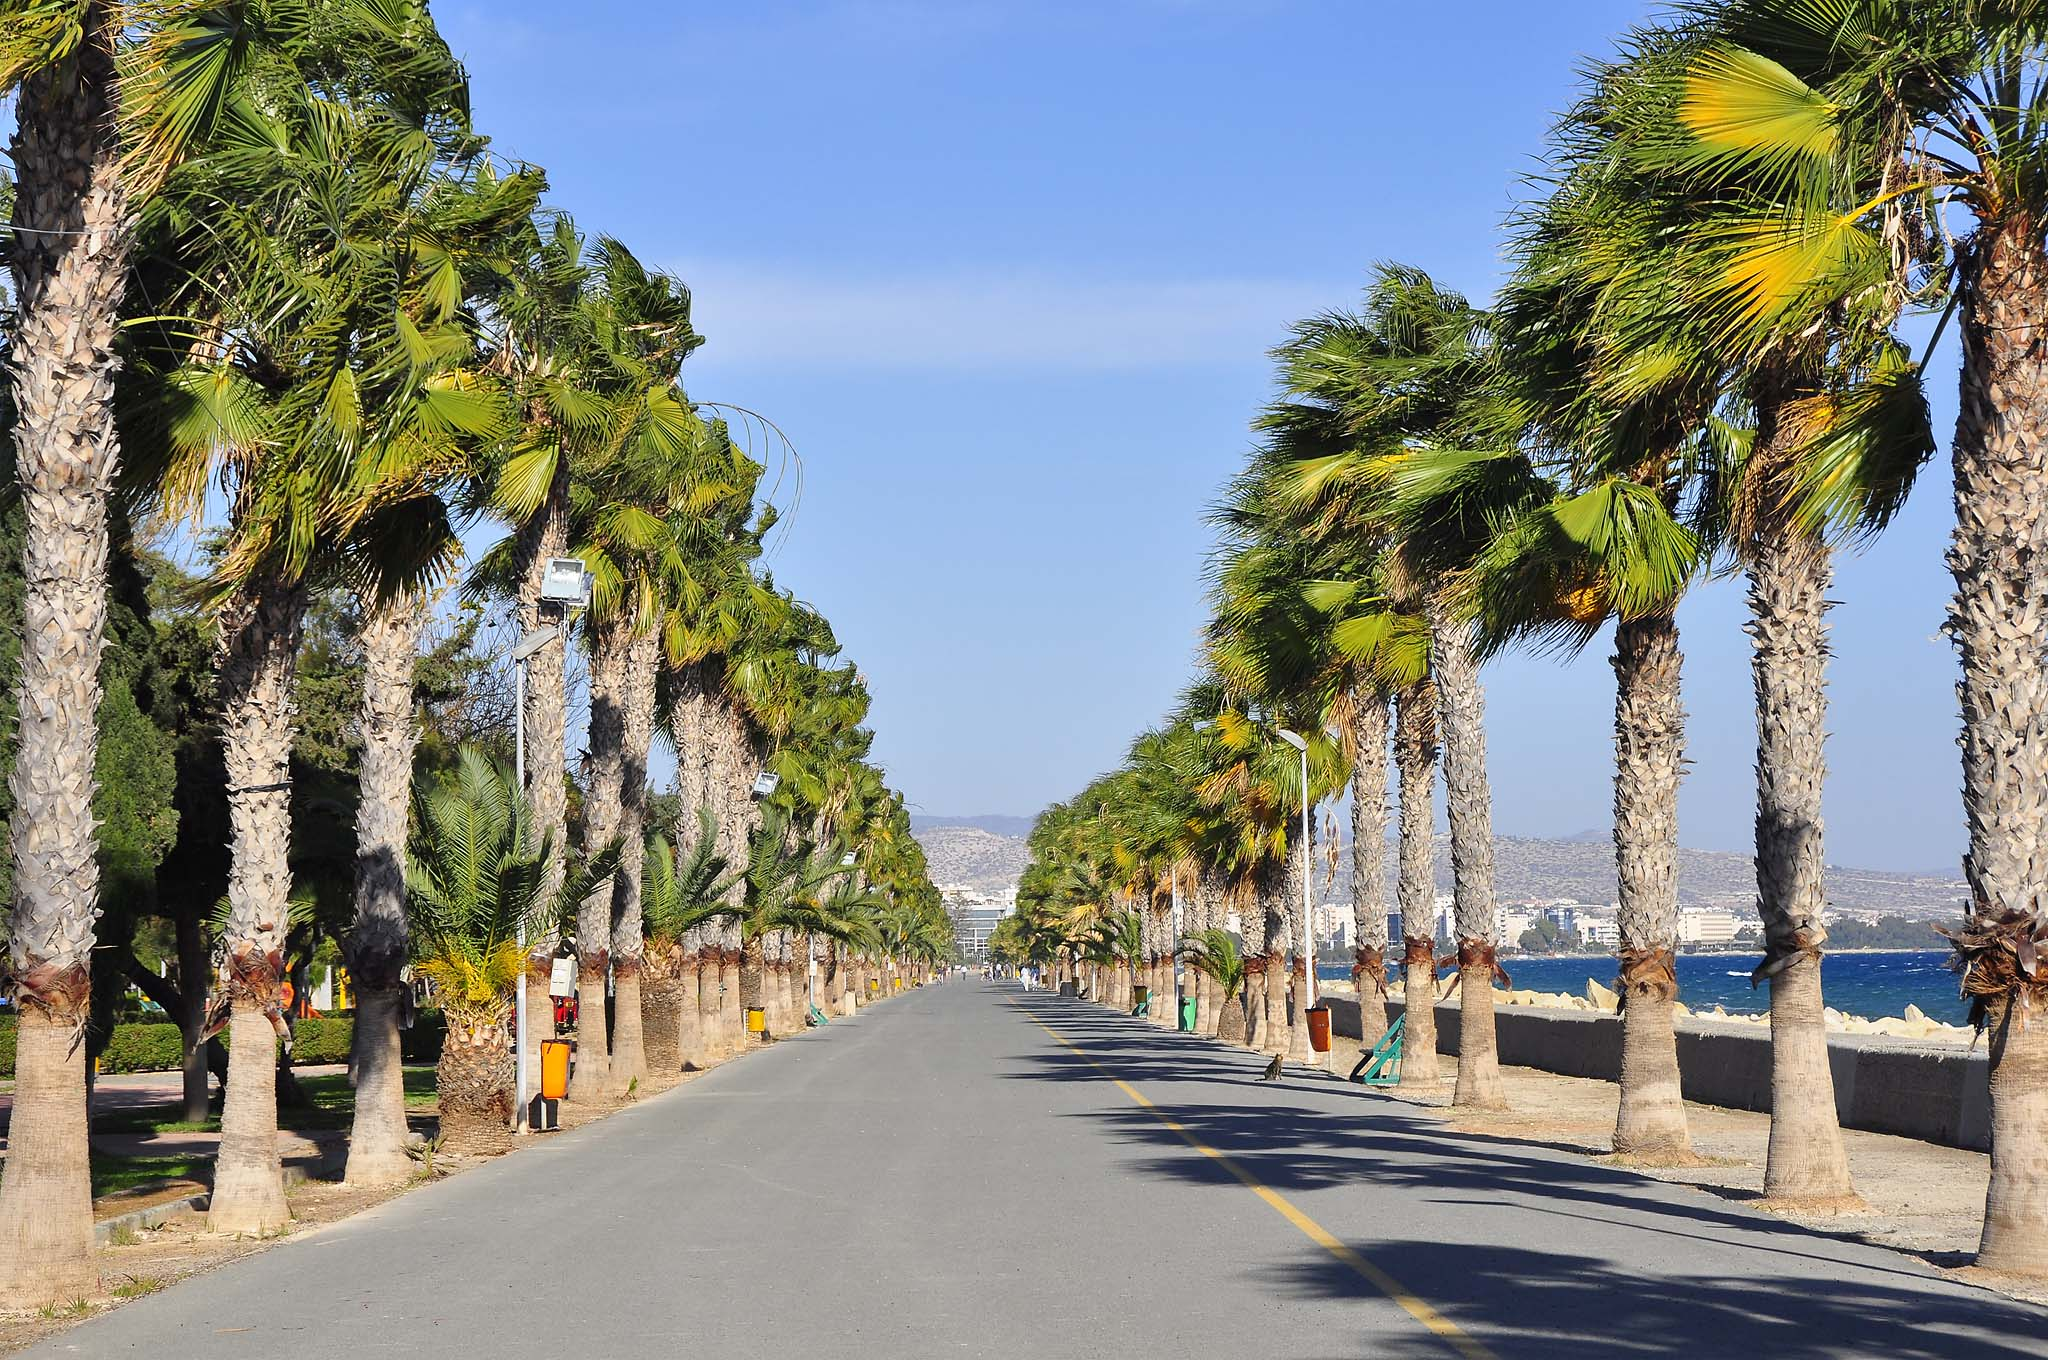 Limassol's seafront promenade